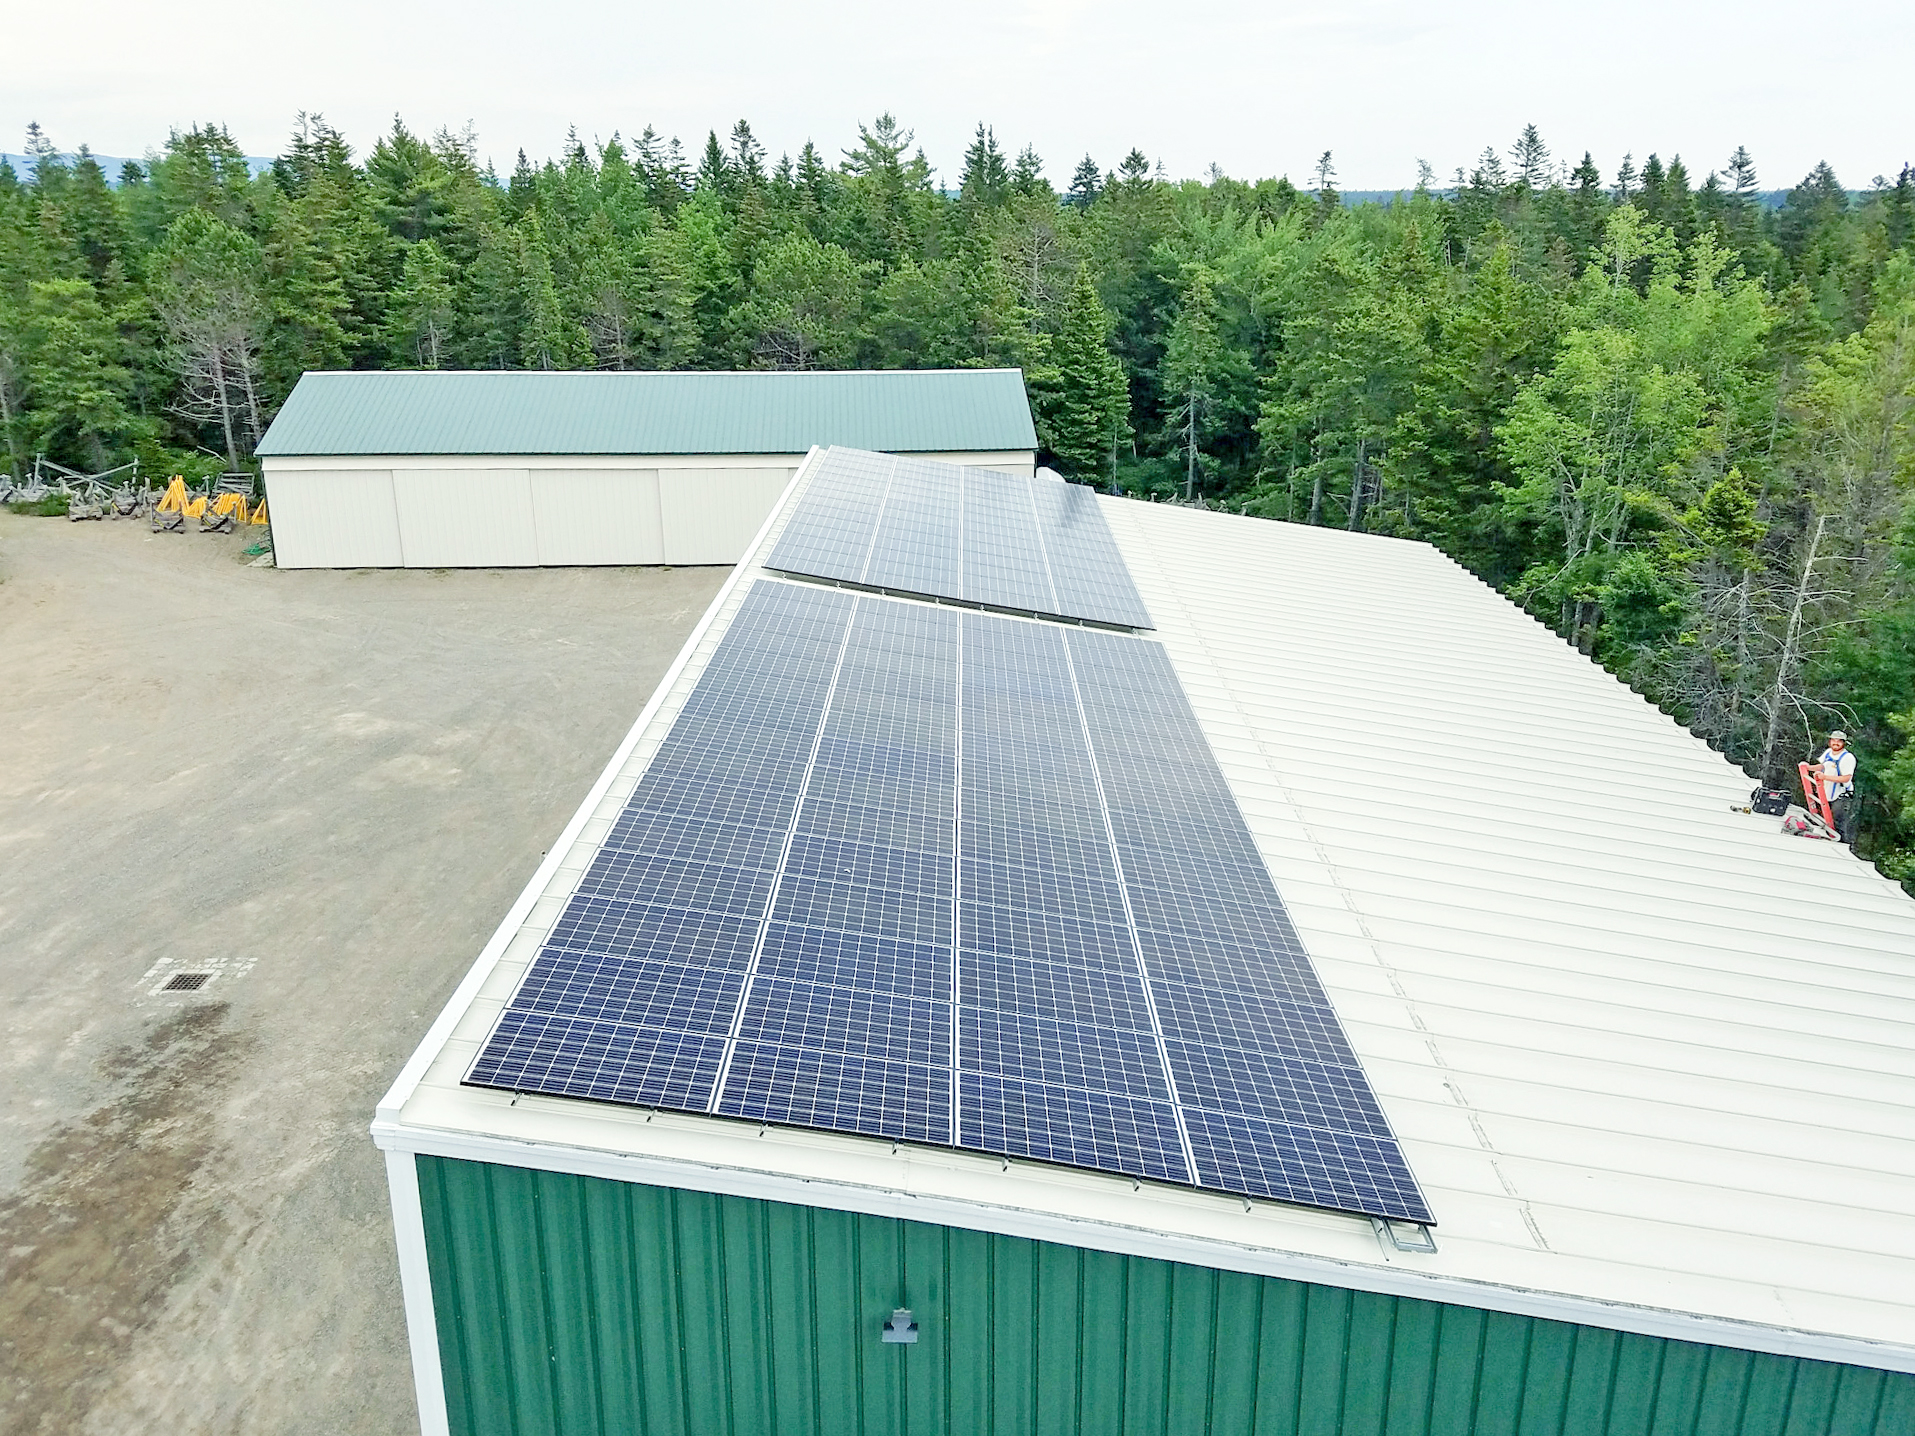 Classic Boat Shop - Bernard, ME Solar Projects - ReVision Energy